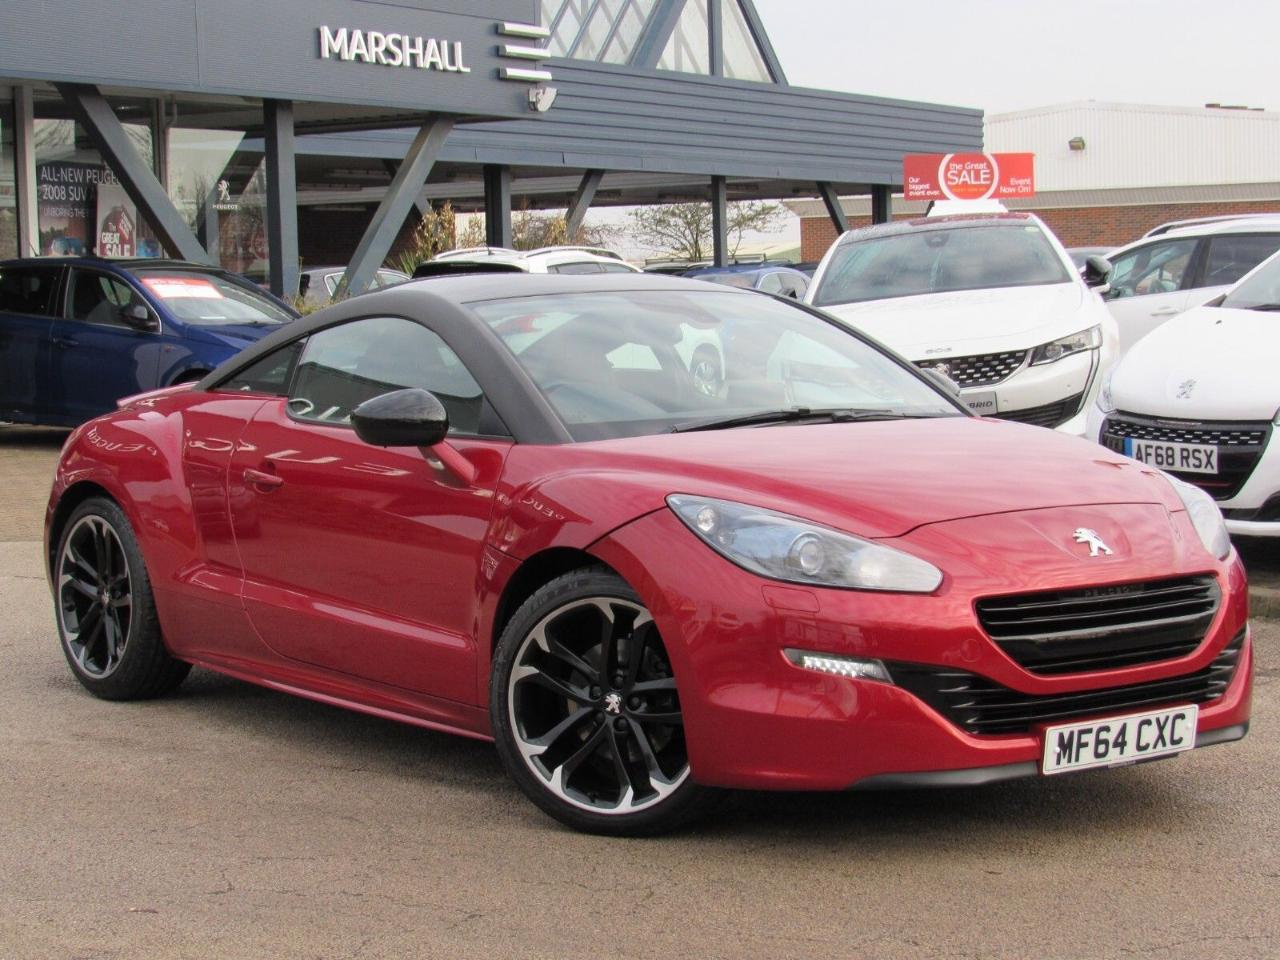 Peugeot RCZ 1.6 THP Red Carbon 2dr